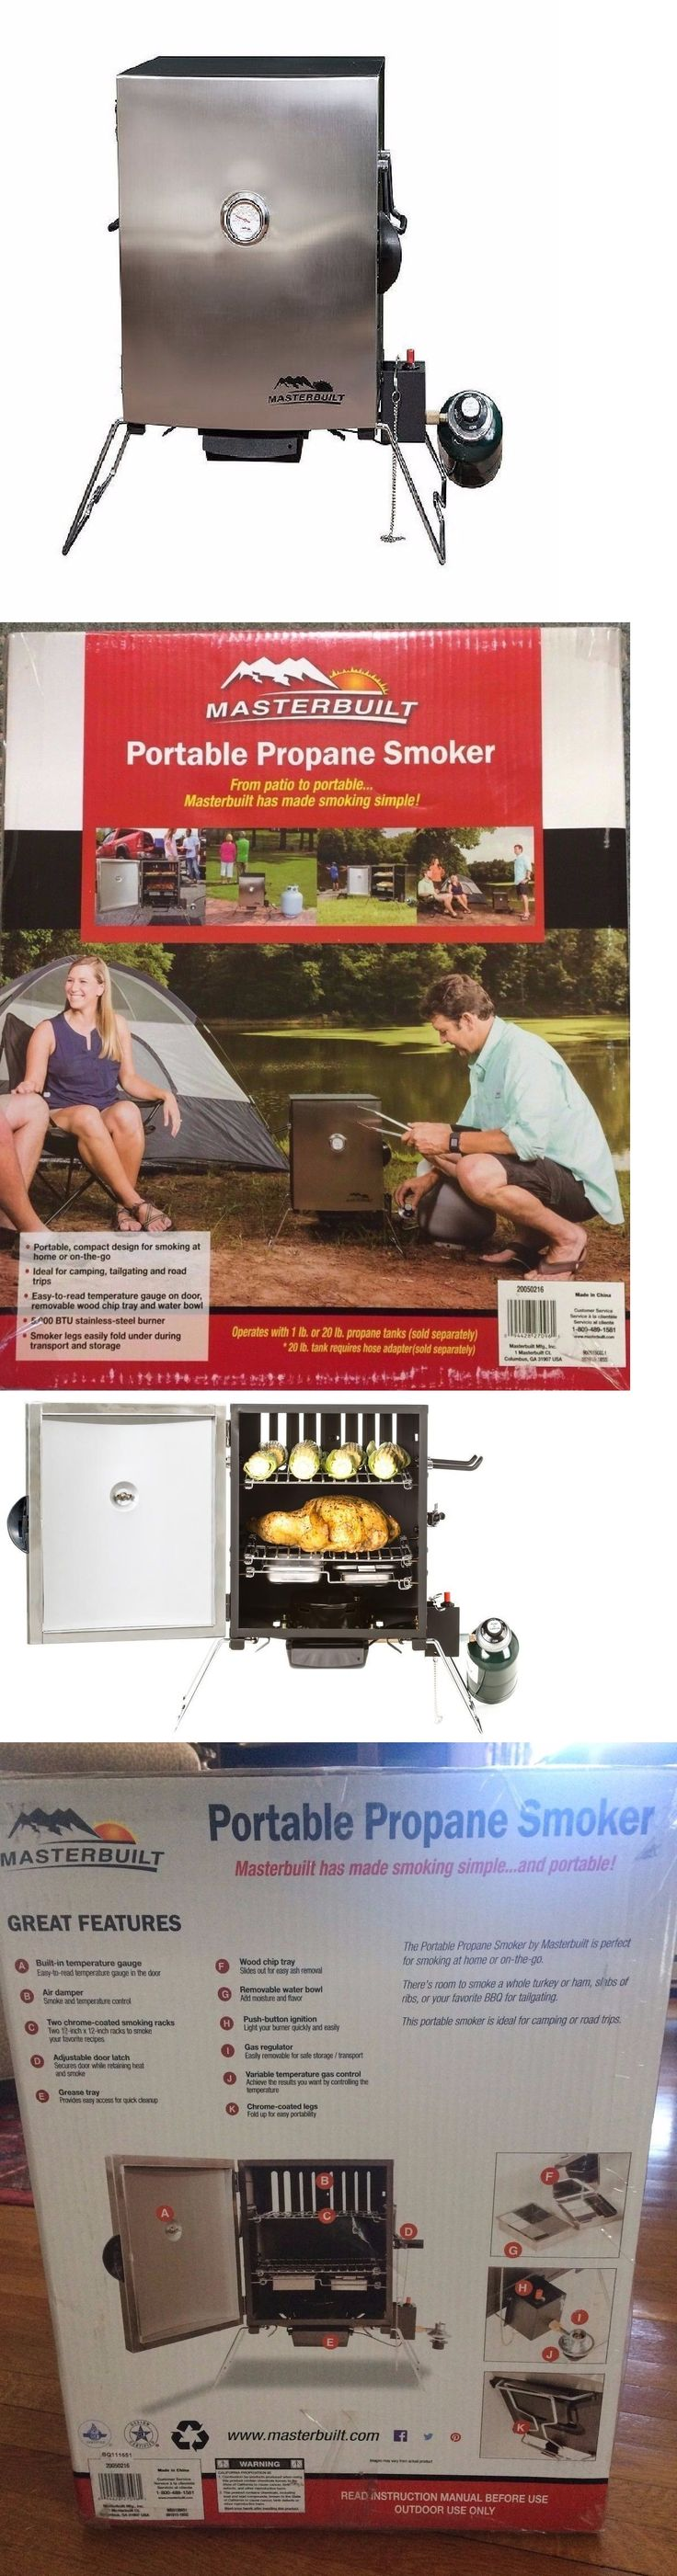 Barbecues Grills and Smokers 151621: Masterbuilt Portable Propane Smoker In Stainless Steel Brand New!! -> BUY IT NOW ONLY: $75 on eBay!